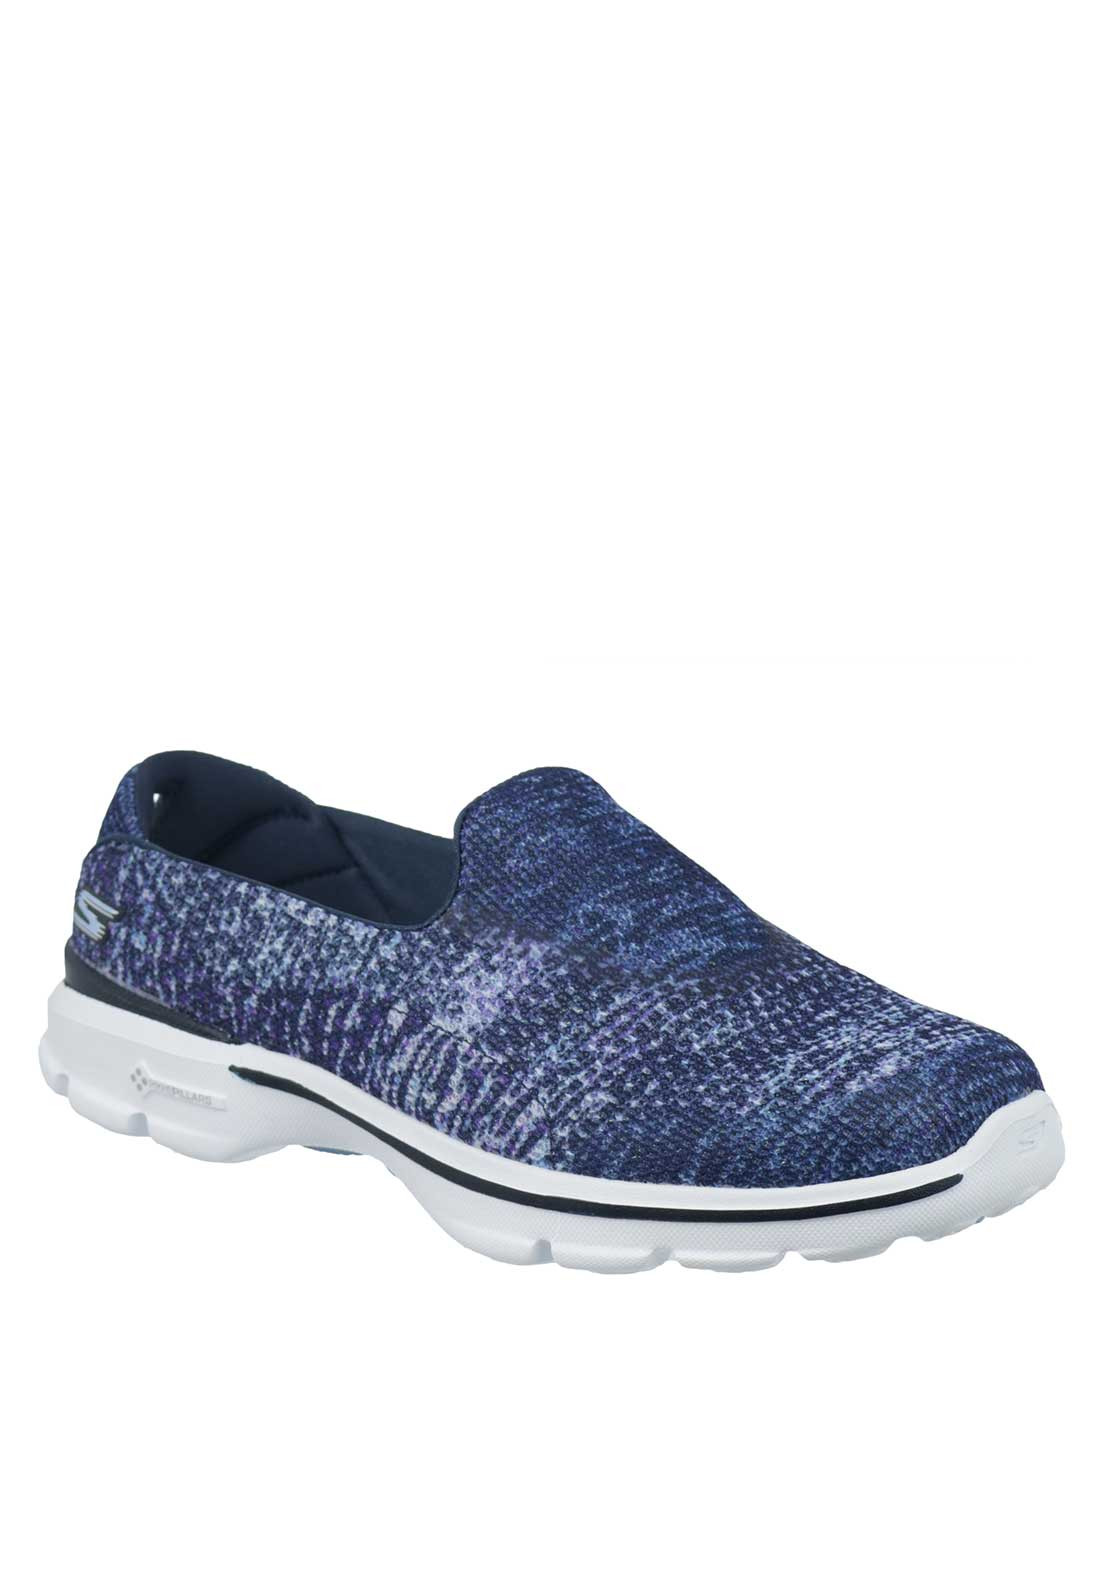 Skechers Womens Go Walk 3 Glisten Slip On Trainers, Blue and Purple